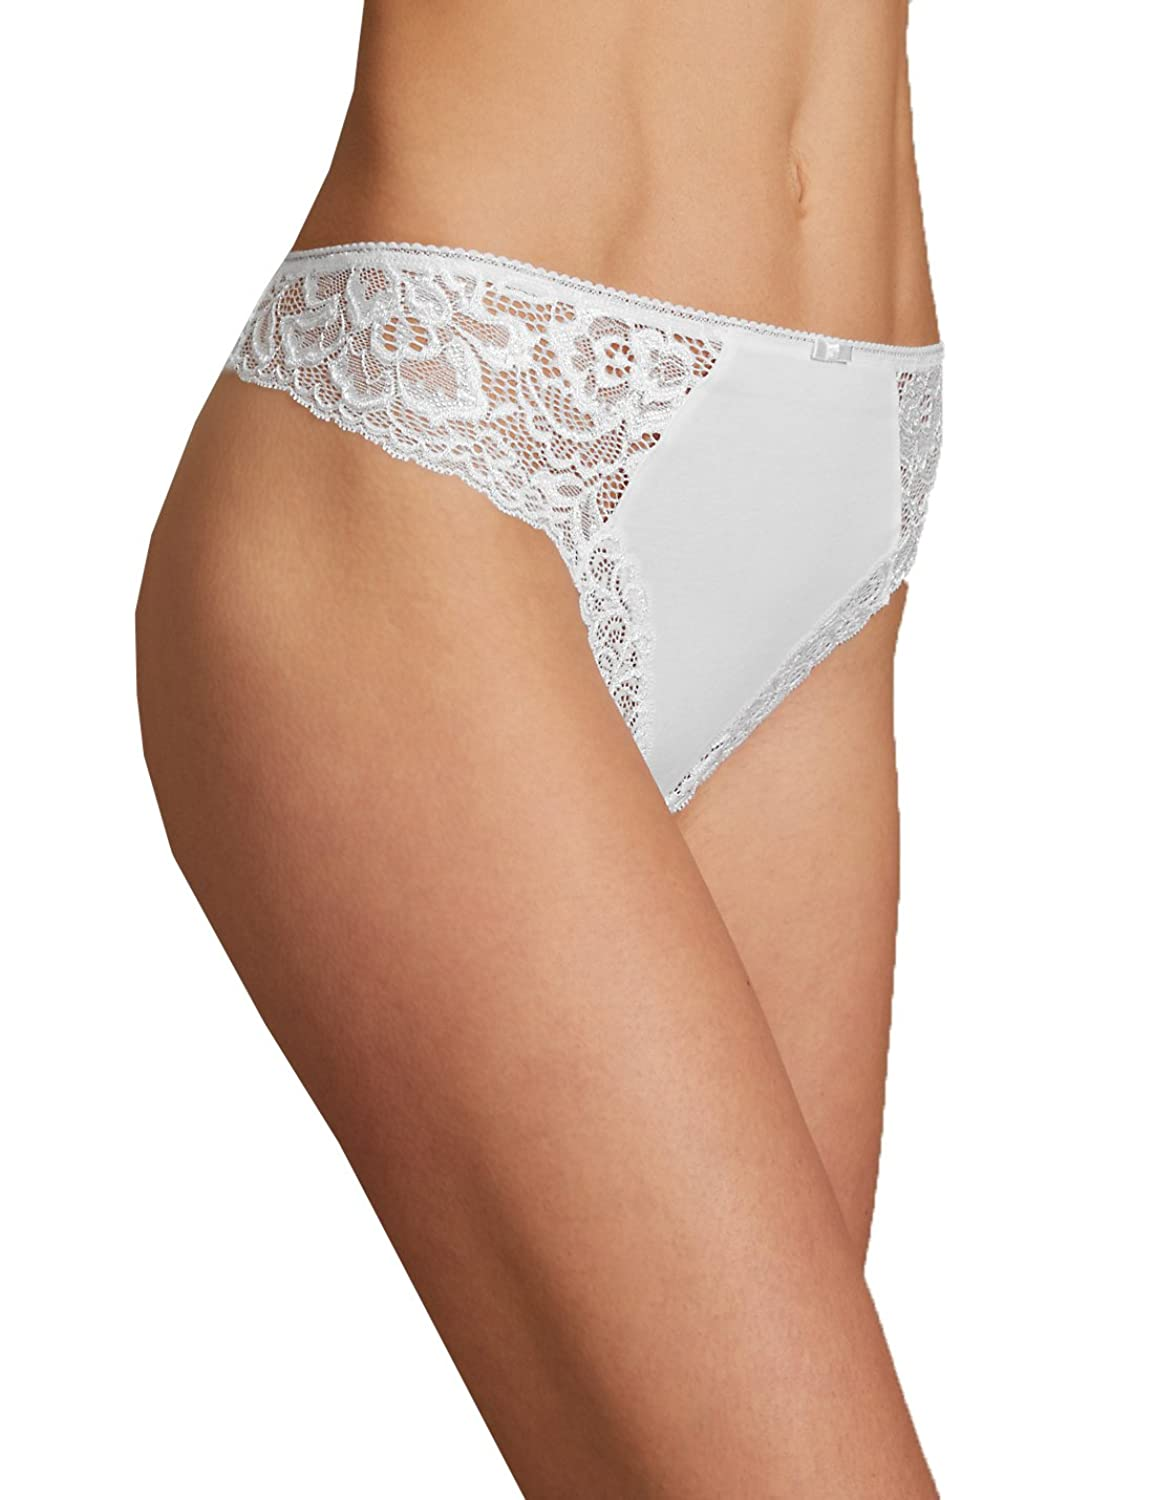 M/&S Marks and Spencer Brazilian Rio Sweetheart all over lace Knickers Size 10